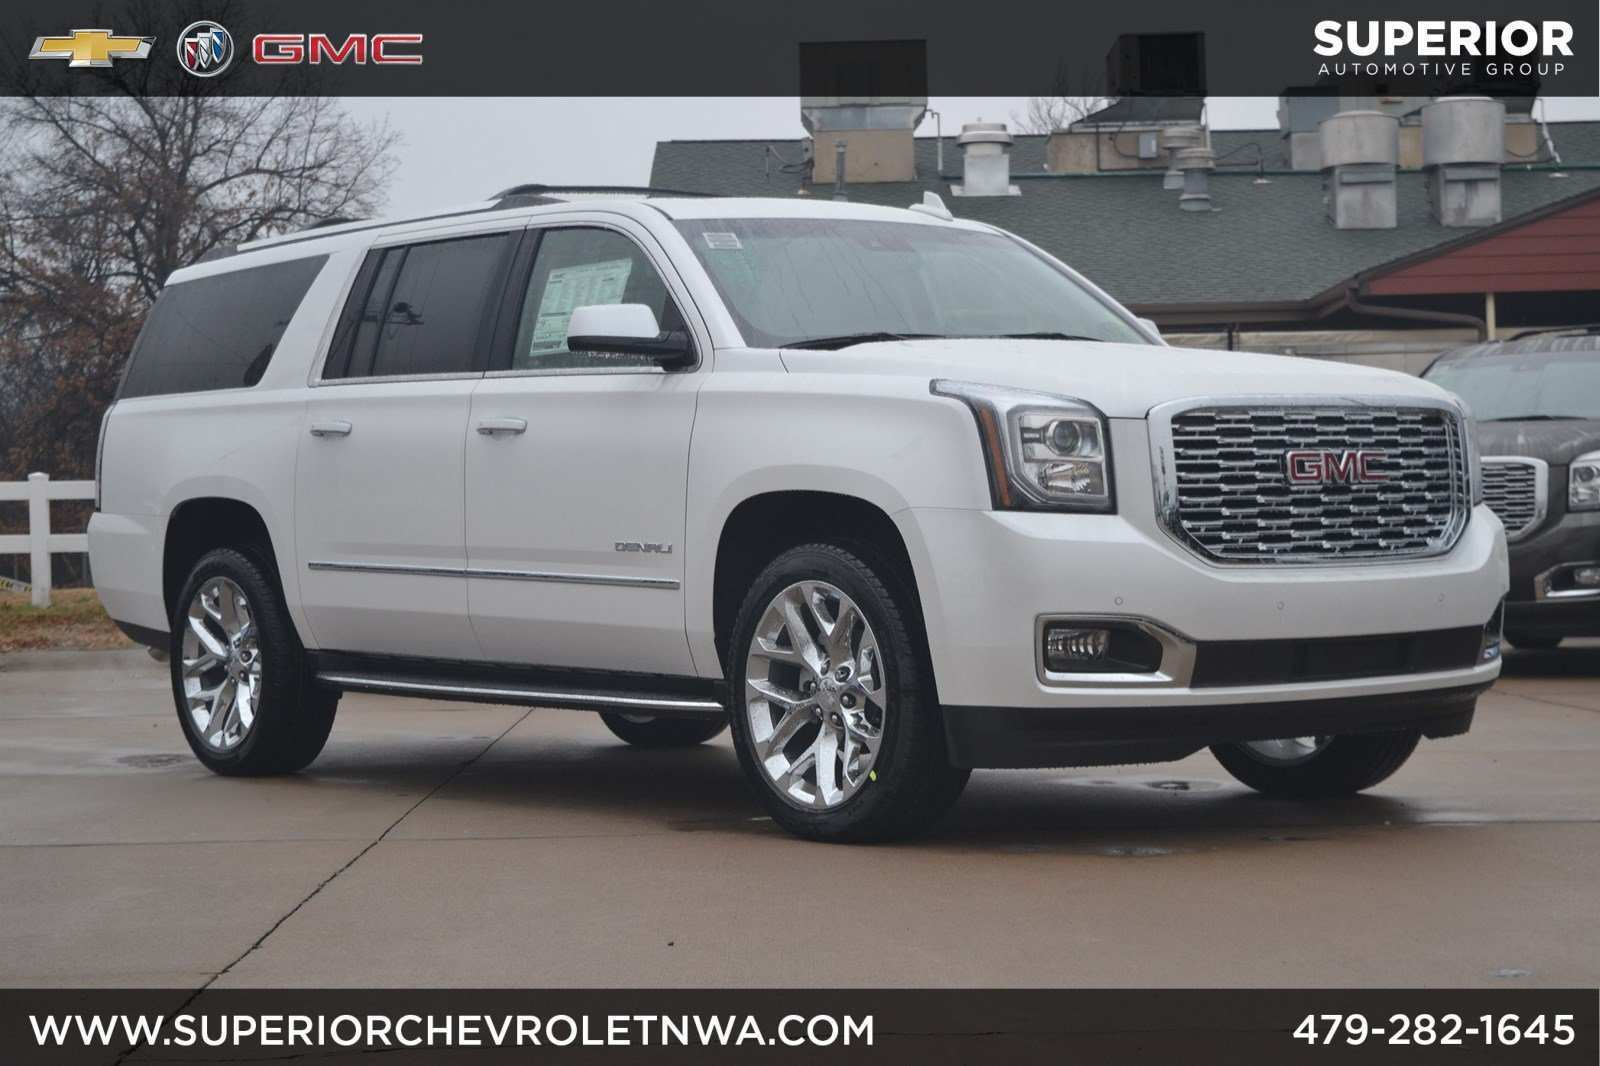 46 Best 2019 GMC Yukon XL Research New